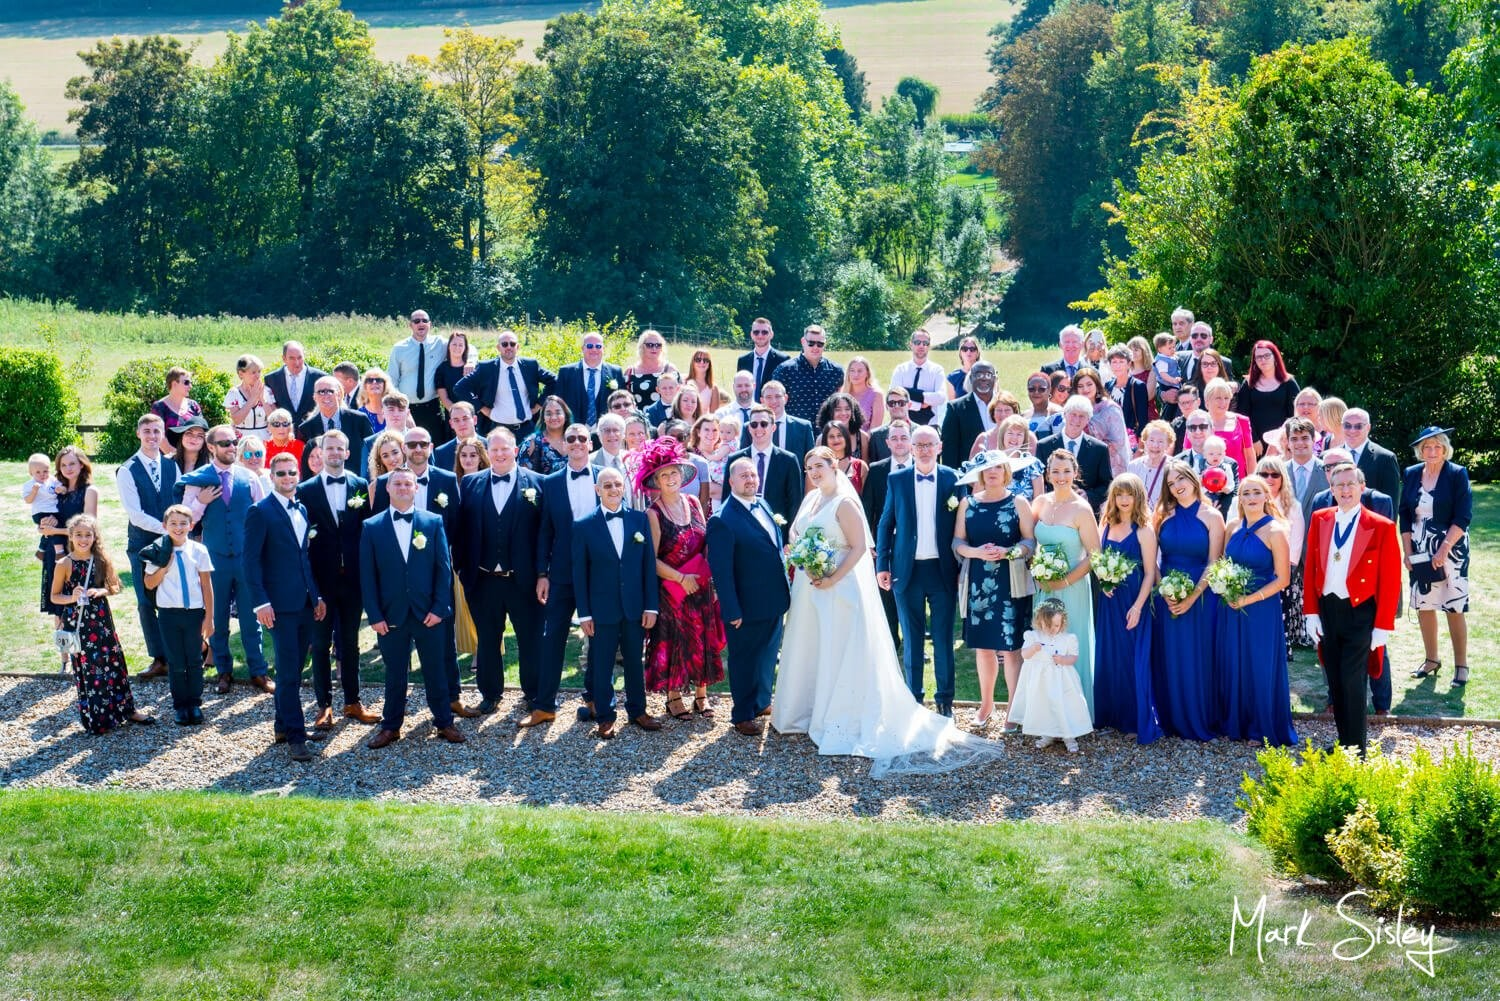 Latimer Estate wedding photos of large group